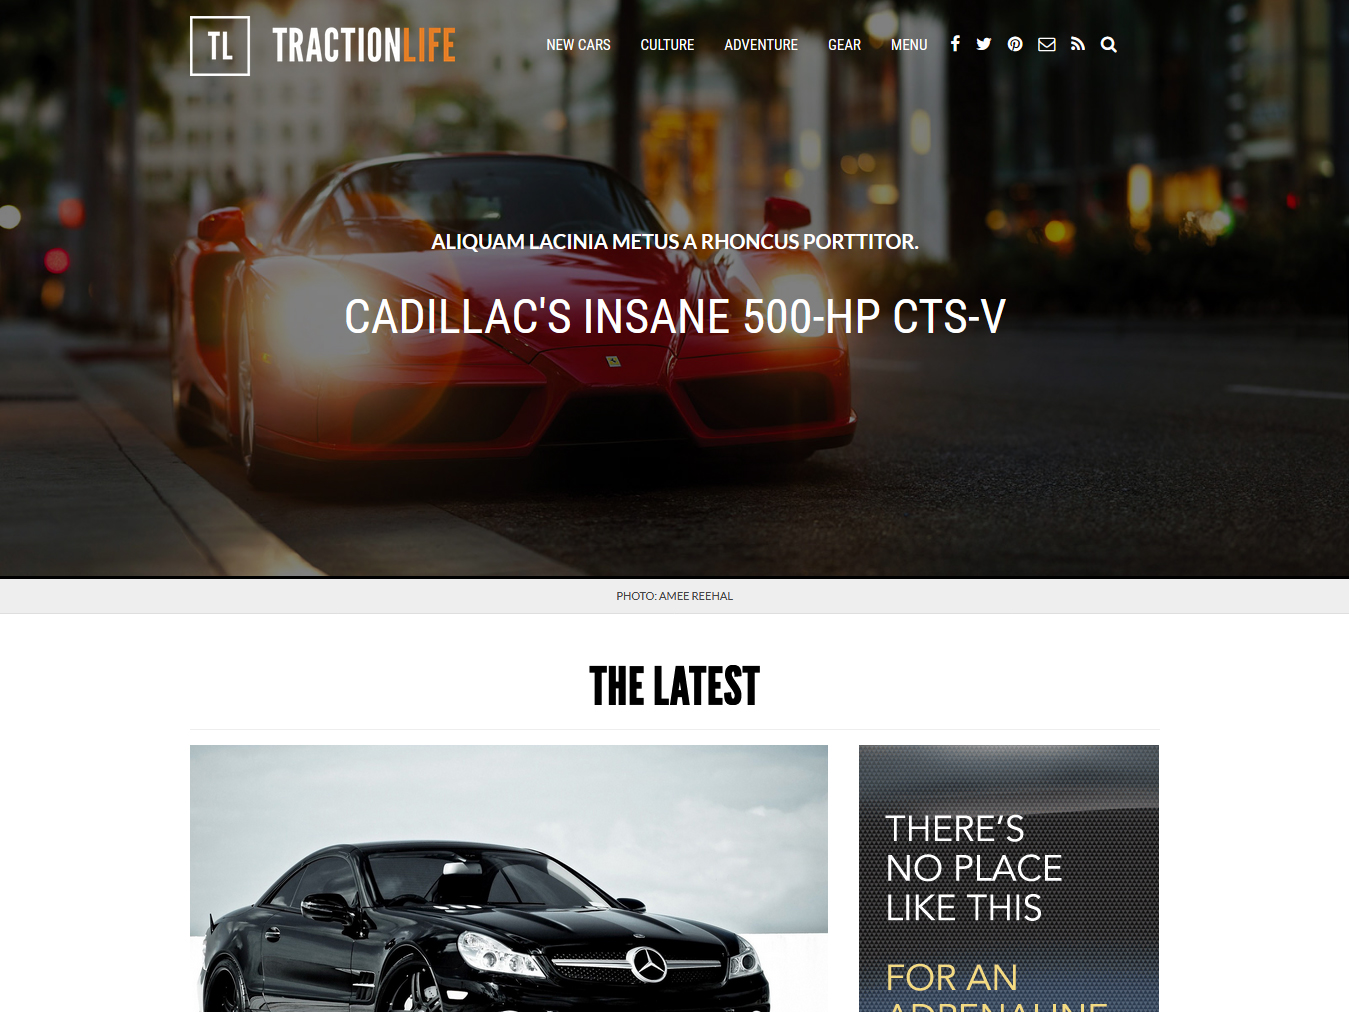 Full Service Website Design For Traction Life